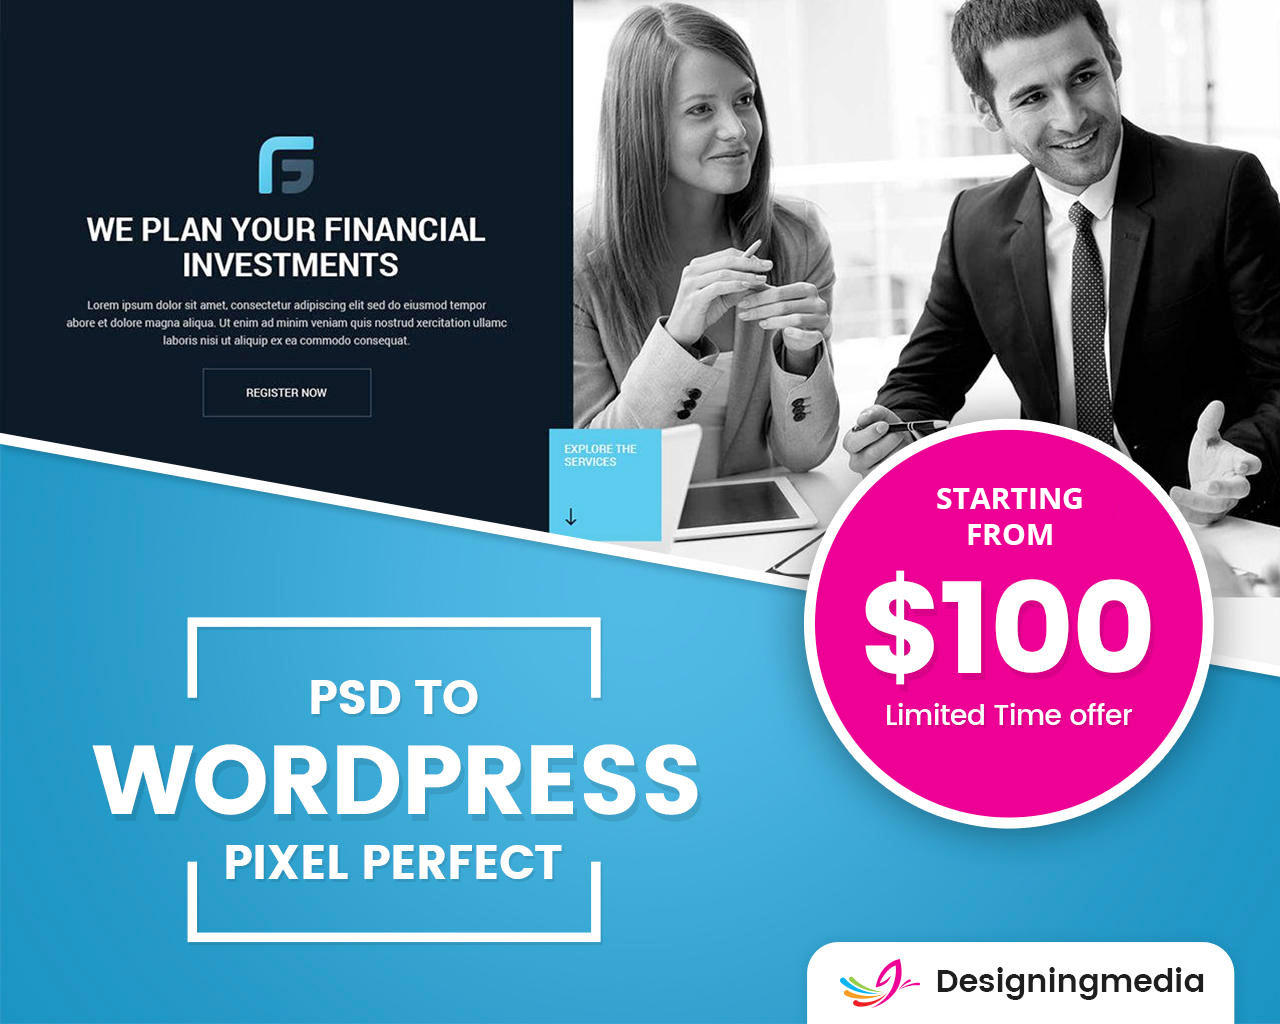 PSD to Wordpress Pixel Perfect by designingmedia - 109286